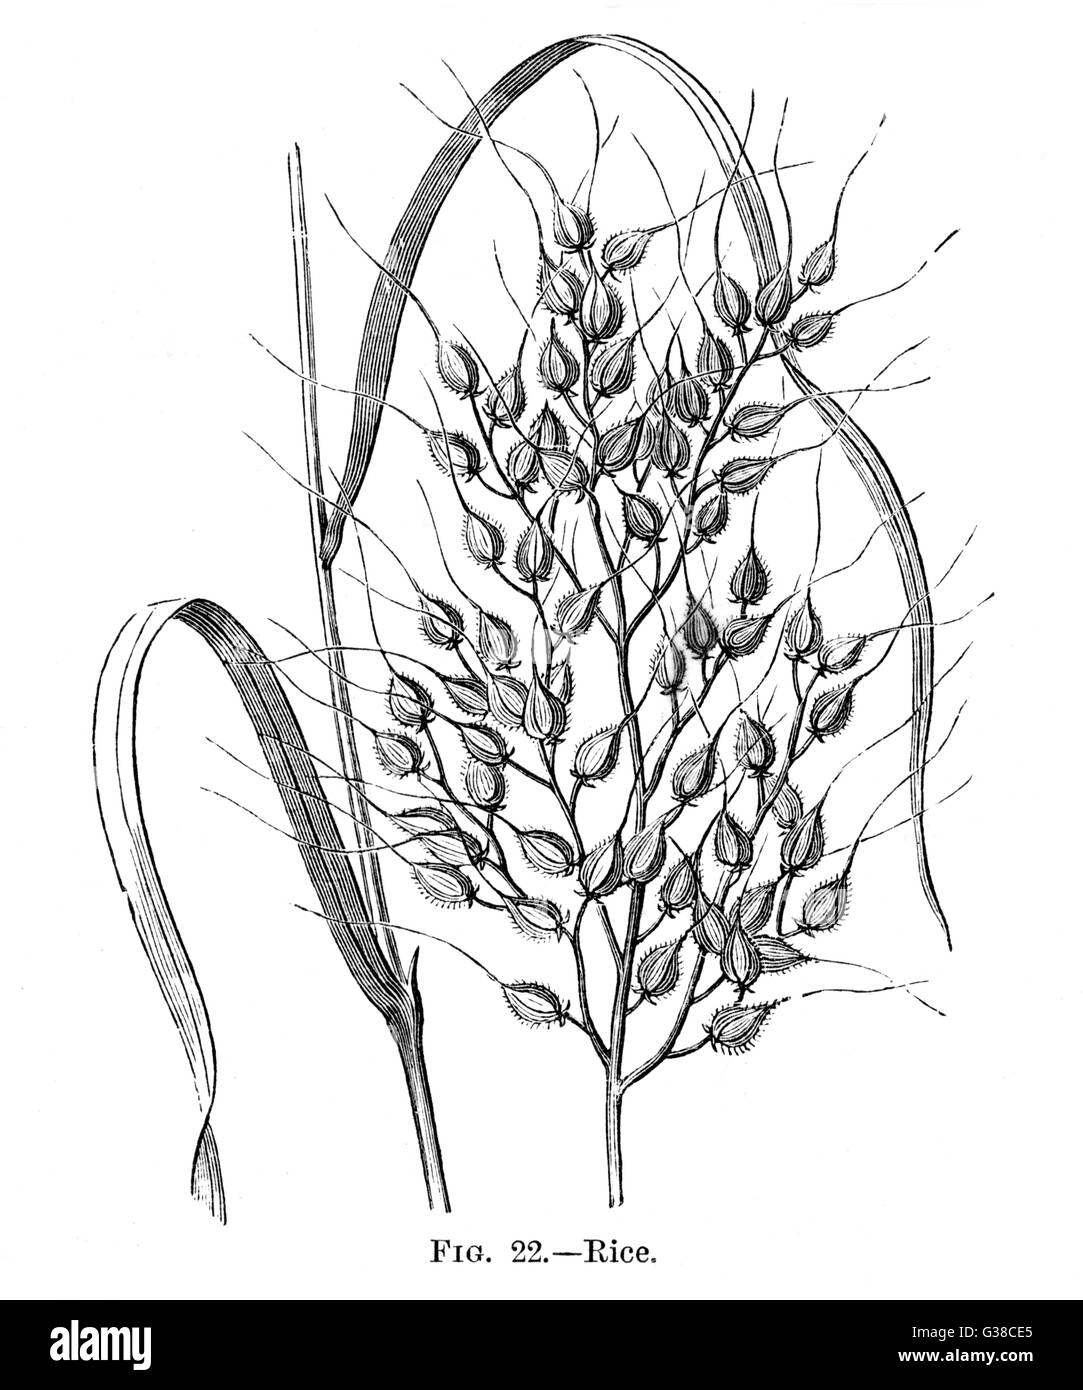 hight resolution of a detailed engraving of rice showing how it grows on the plant date 19th